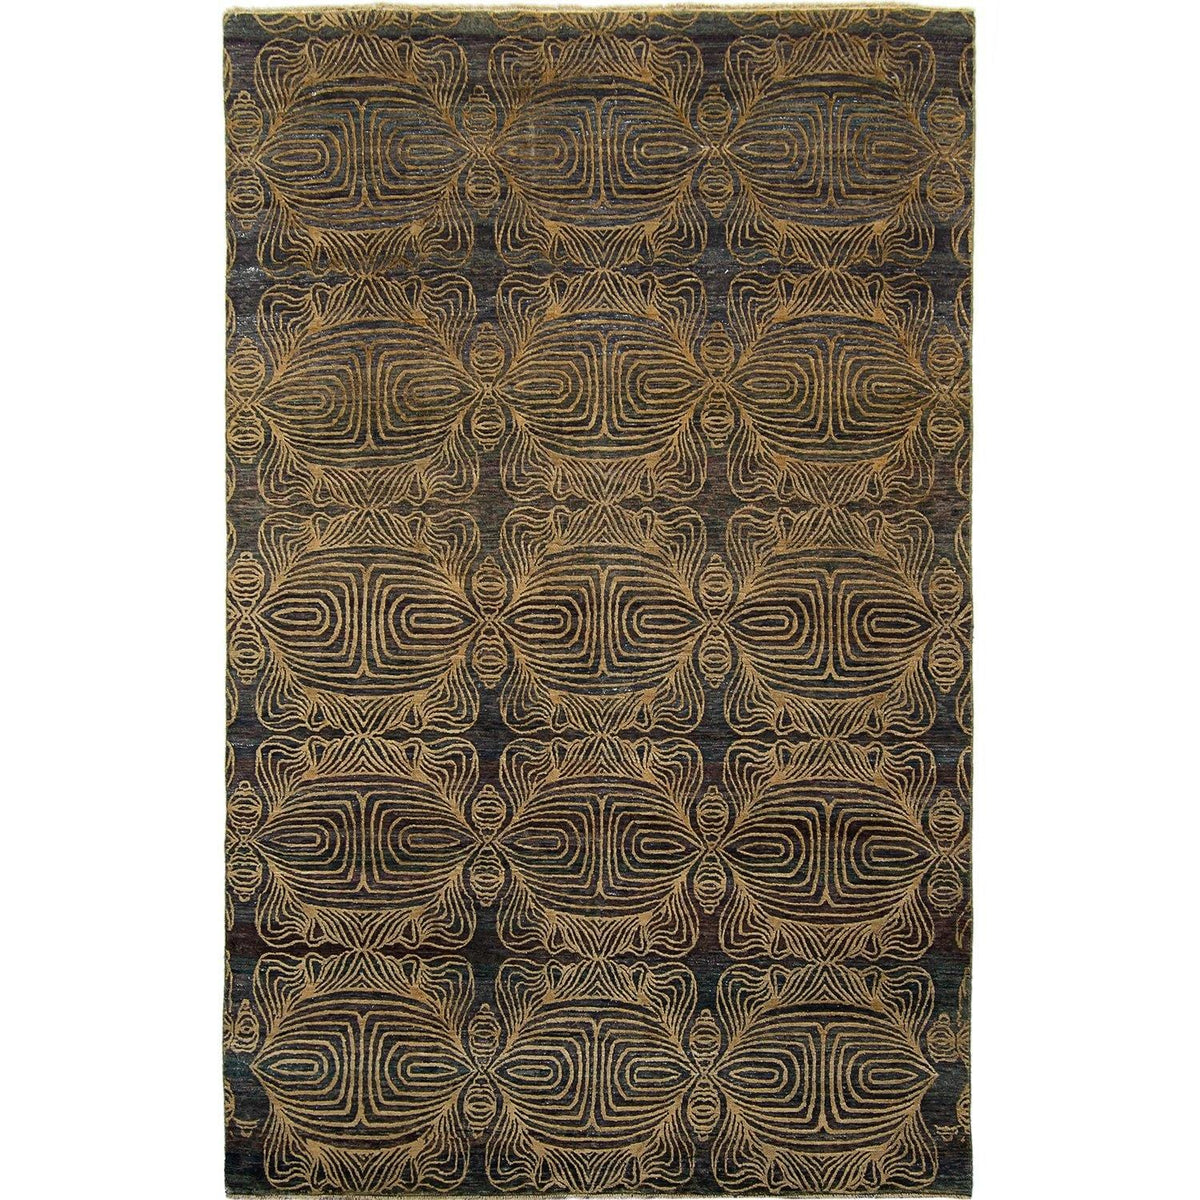 Fine Contemporary Hand-knotted NZ Wool Rug 184cm x 308cm Persian-Rug | House-of-Haghi | NewMarket | Auckland | NZ | Handmade Persian Rugs | Hand Knotted Persian Rugs